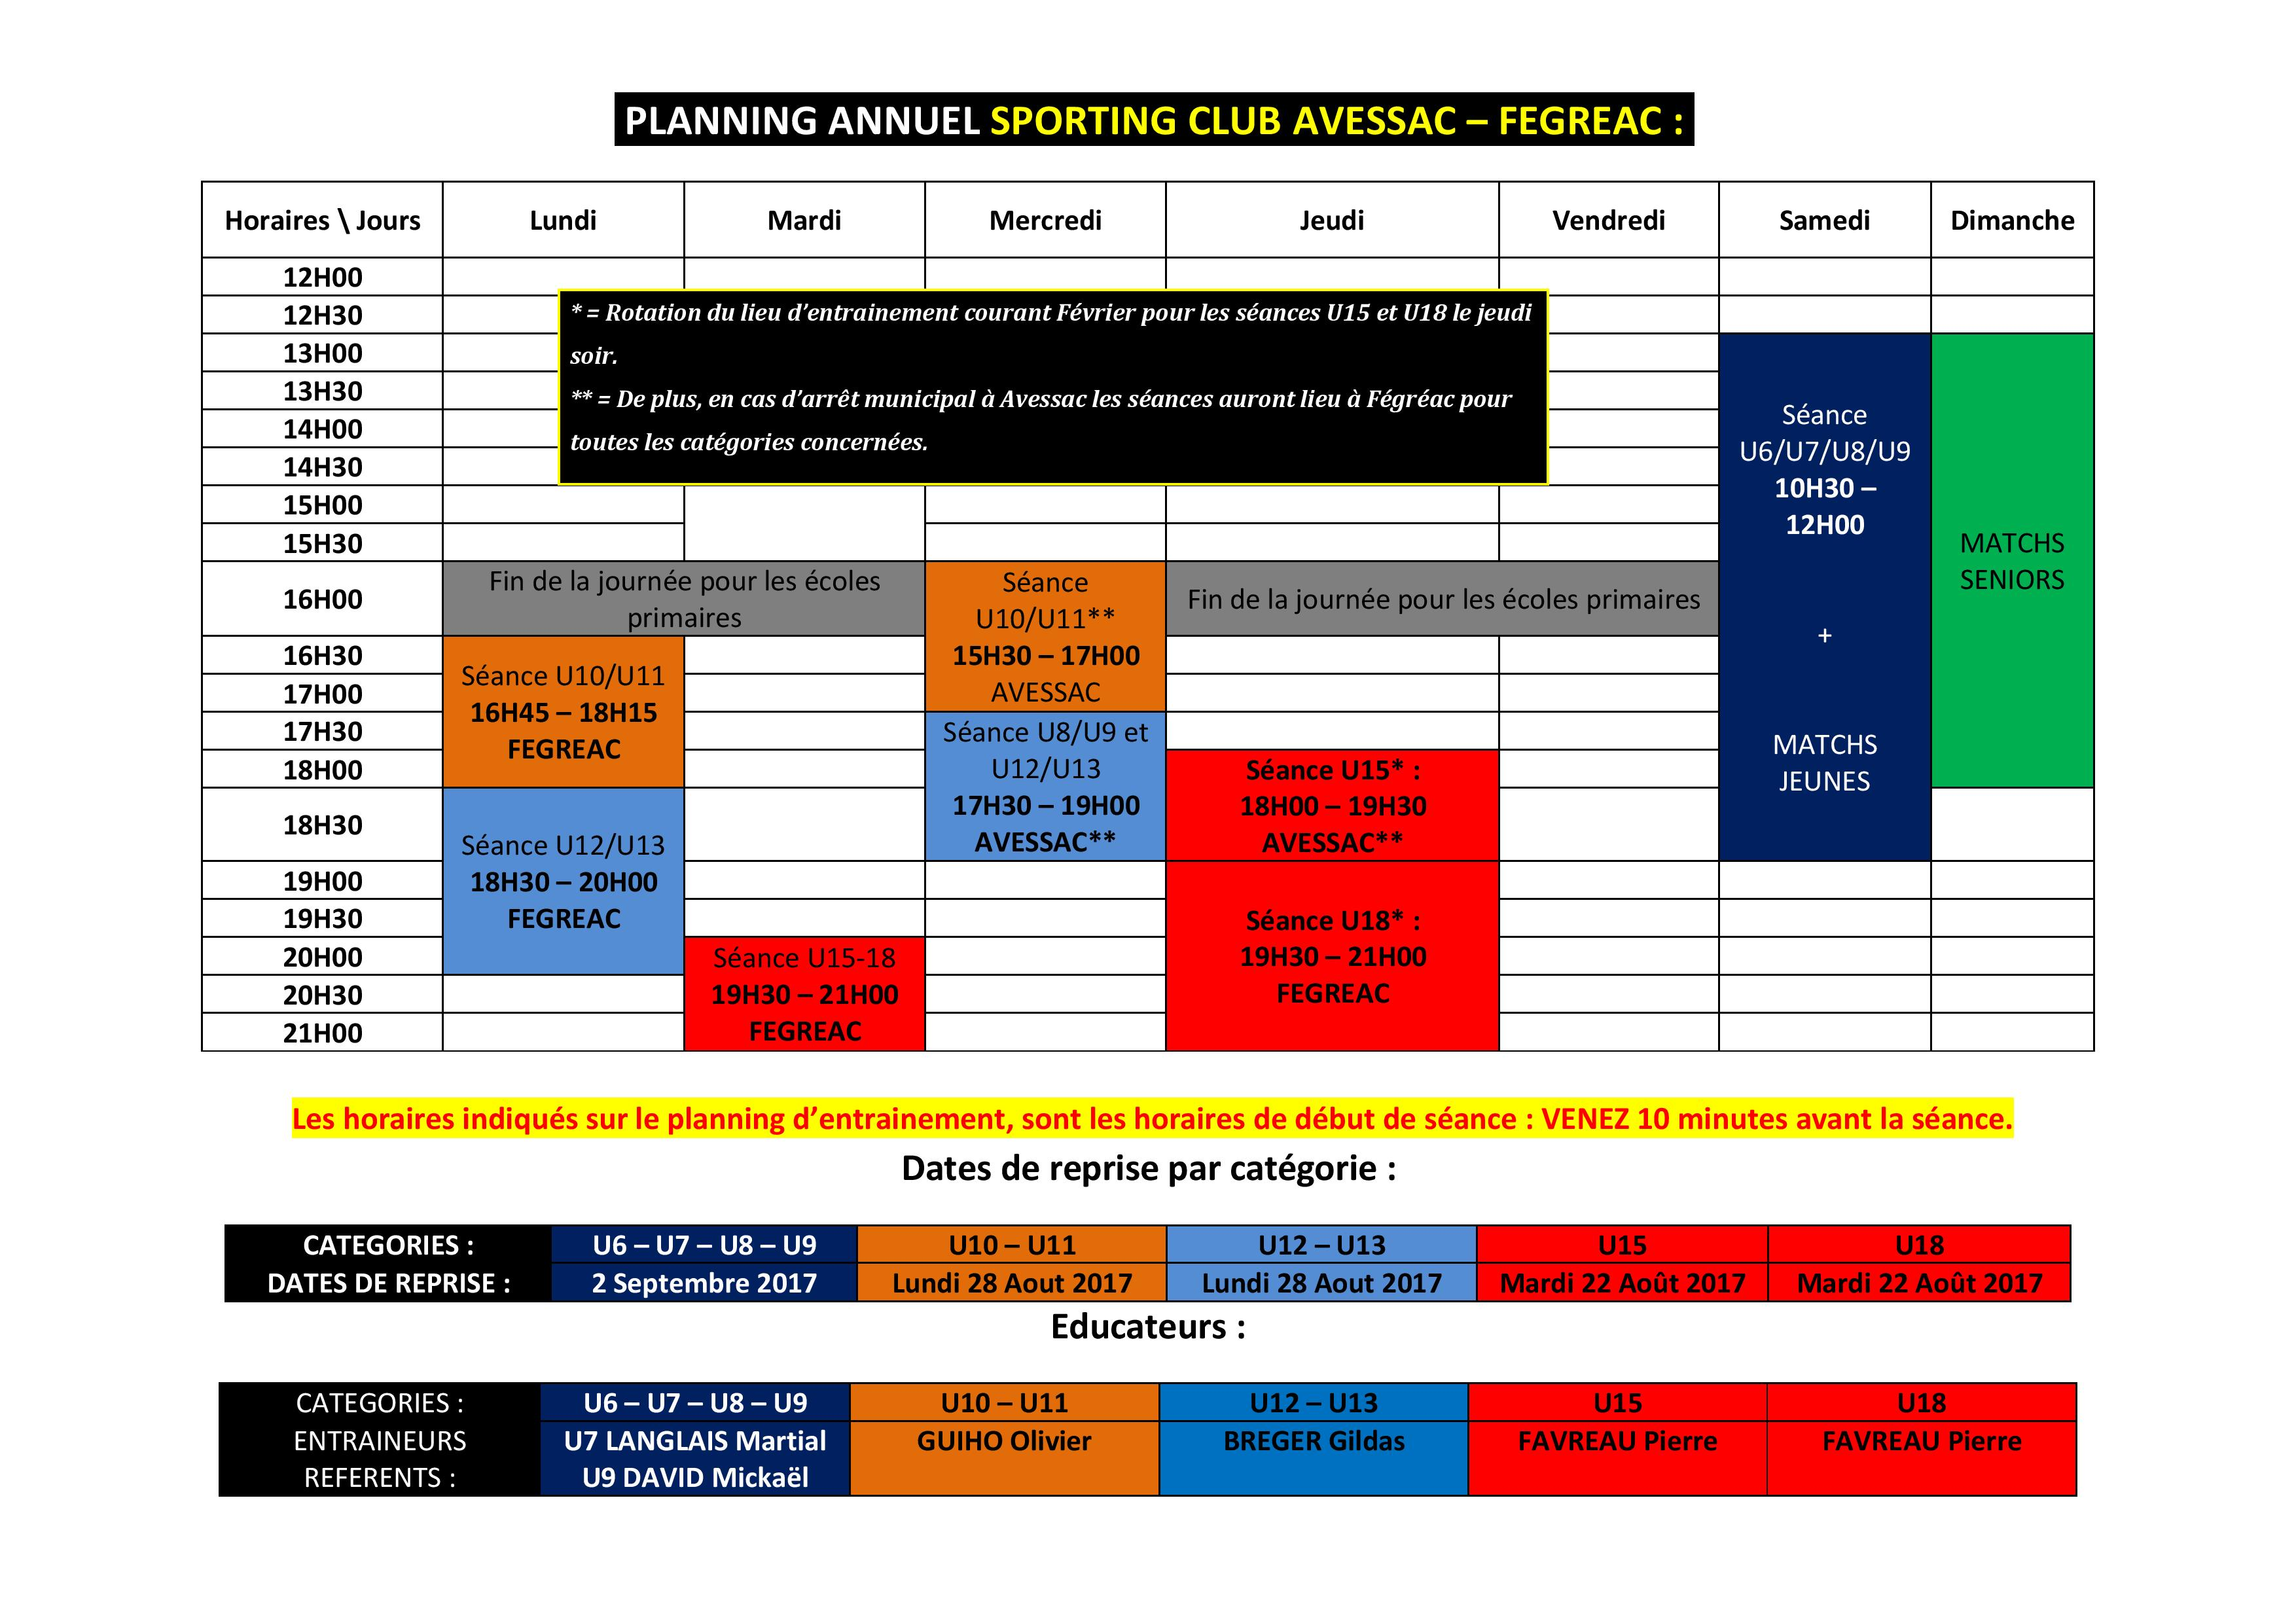 PLANNING ANNUEL ENTRAINEMENTS SCAF 1-page-001.jpg